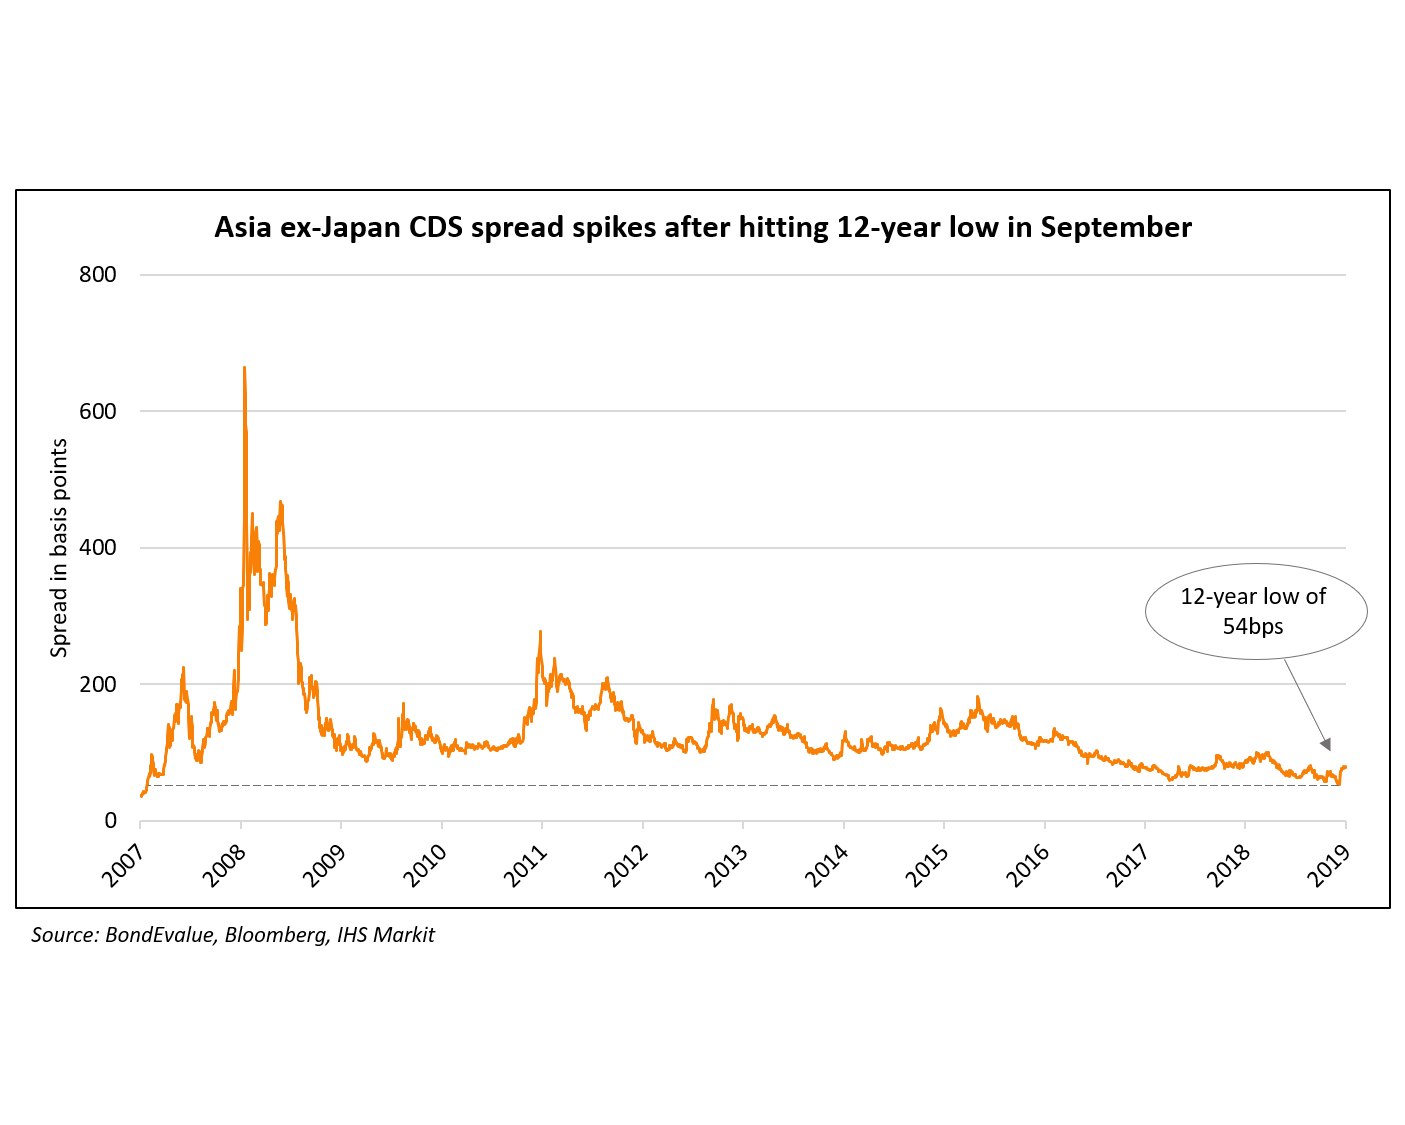 AxJ CDS Spreads WP2